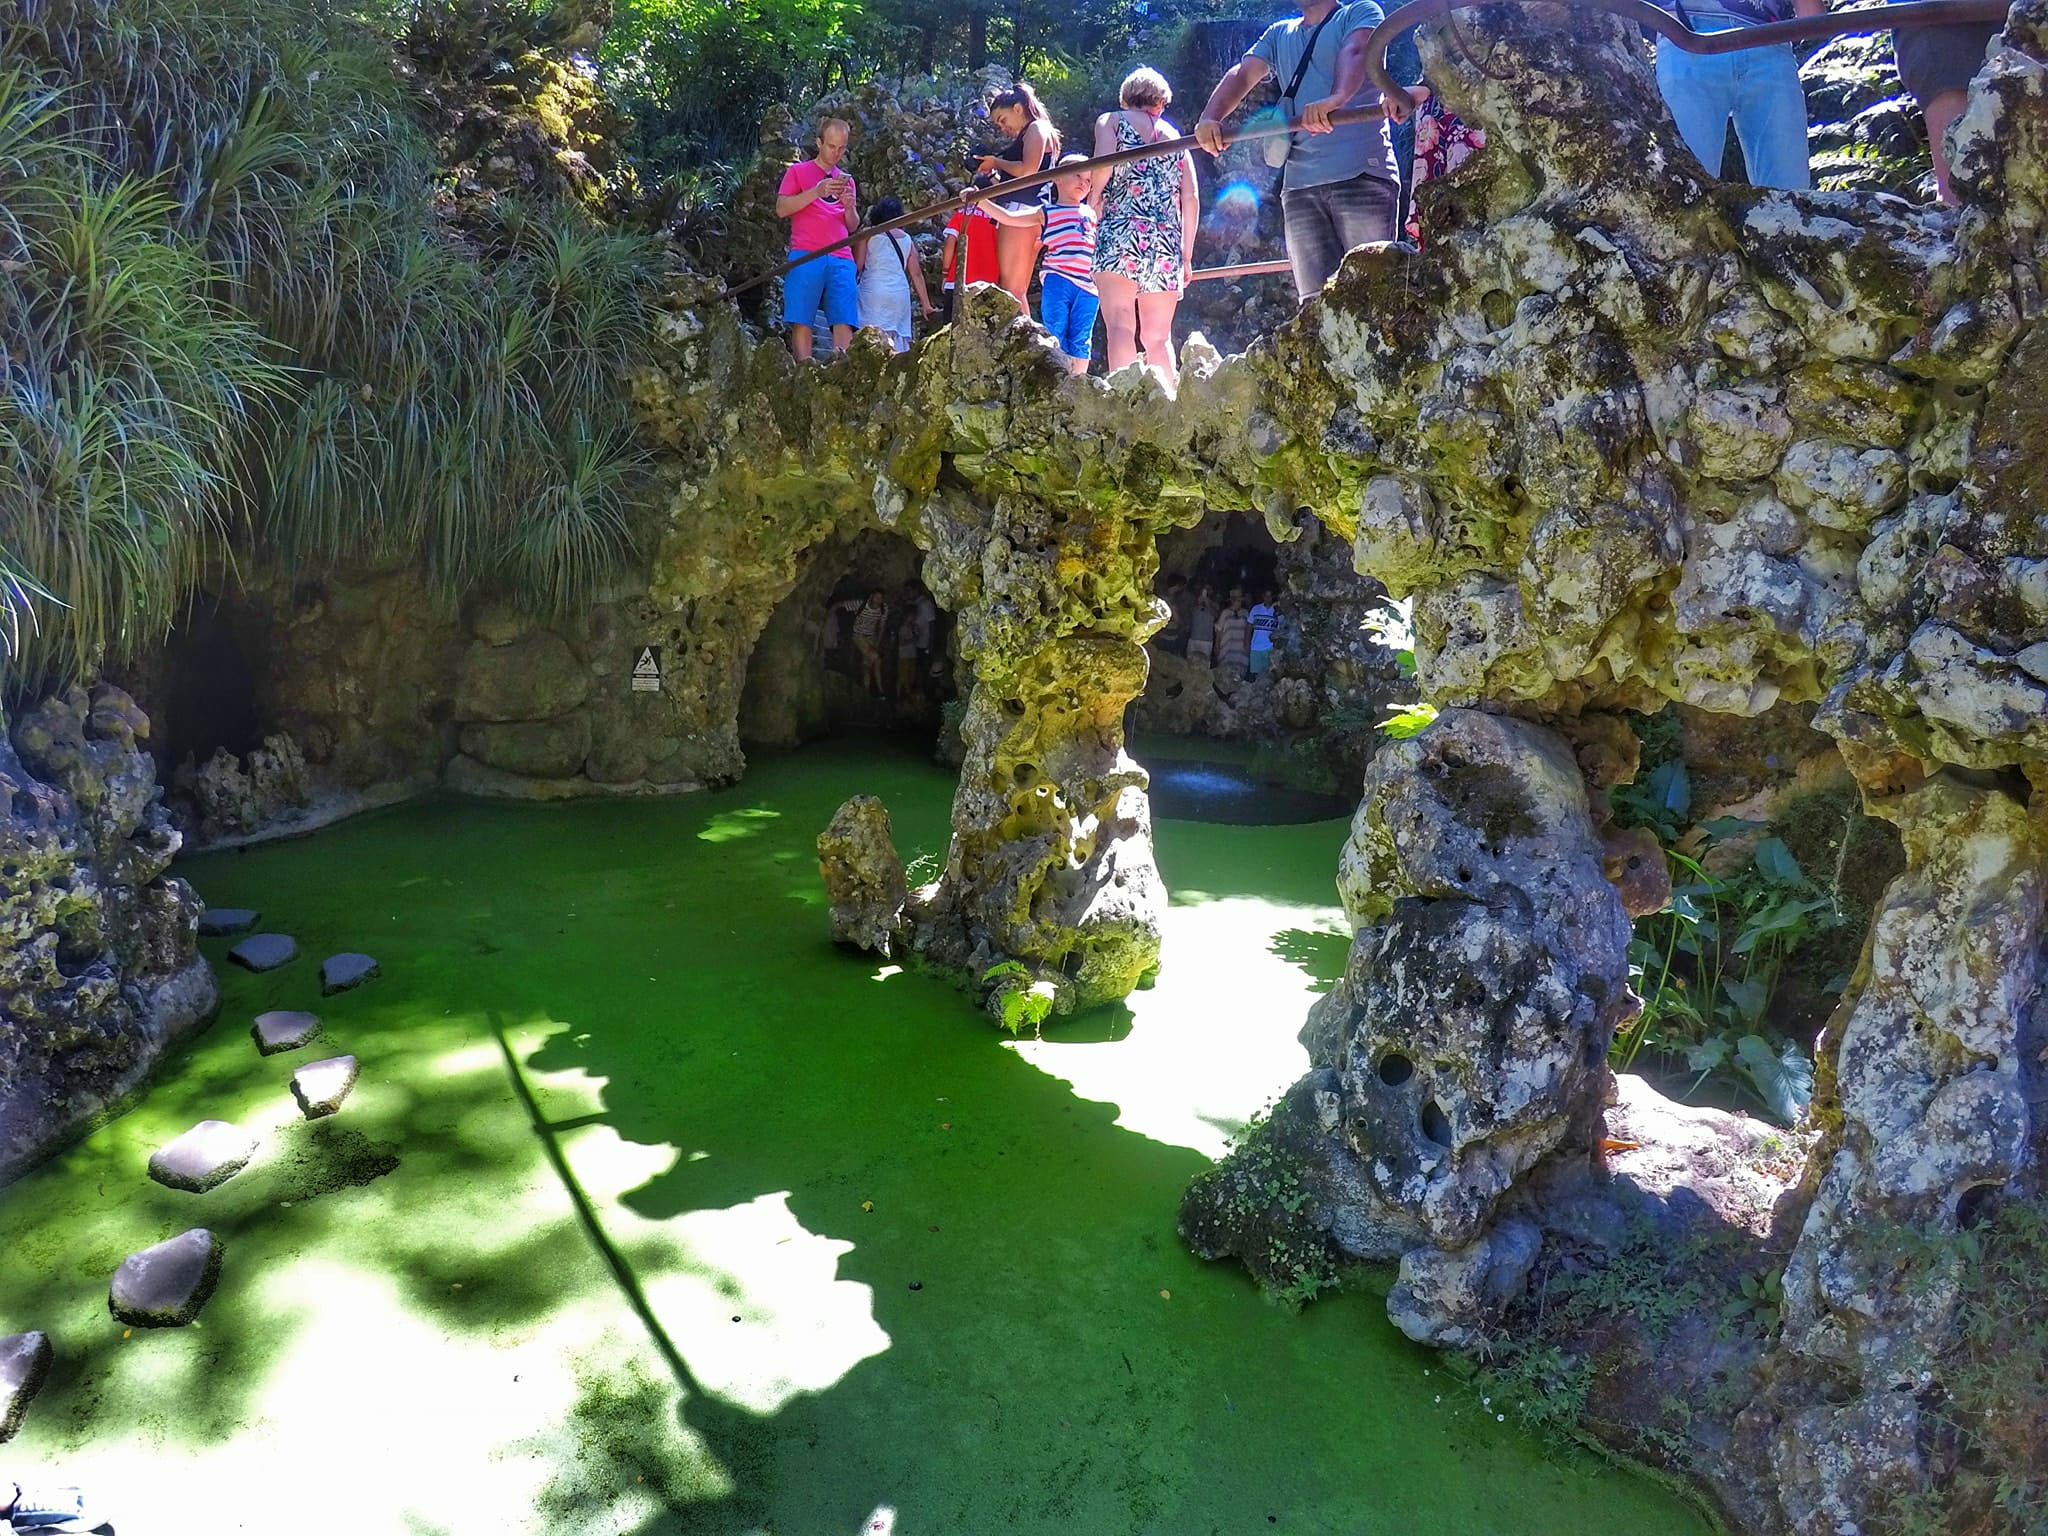 day trip from Lisbon - Quinta da Regaleira Garden in Sintra